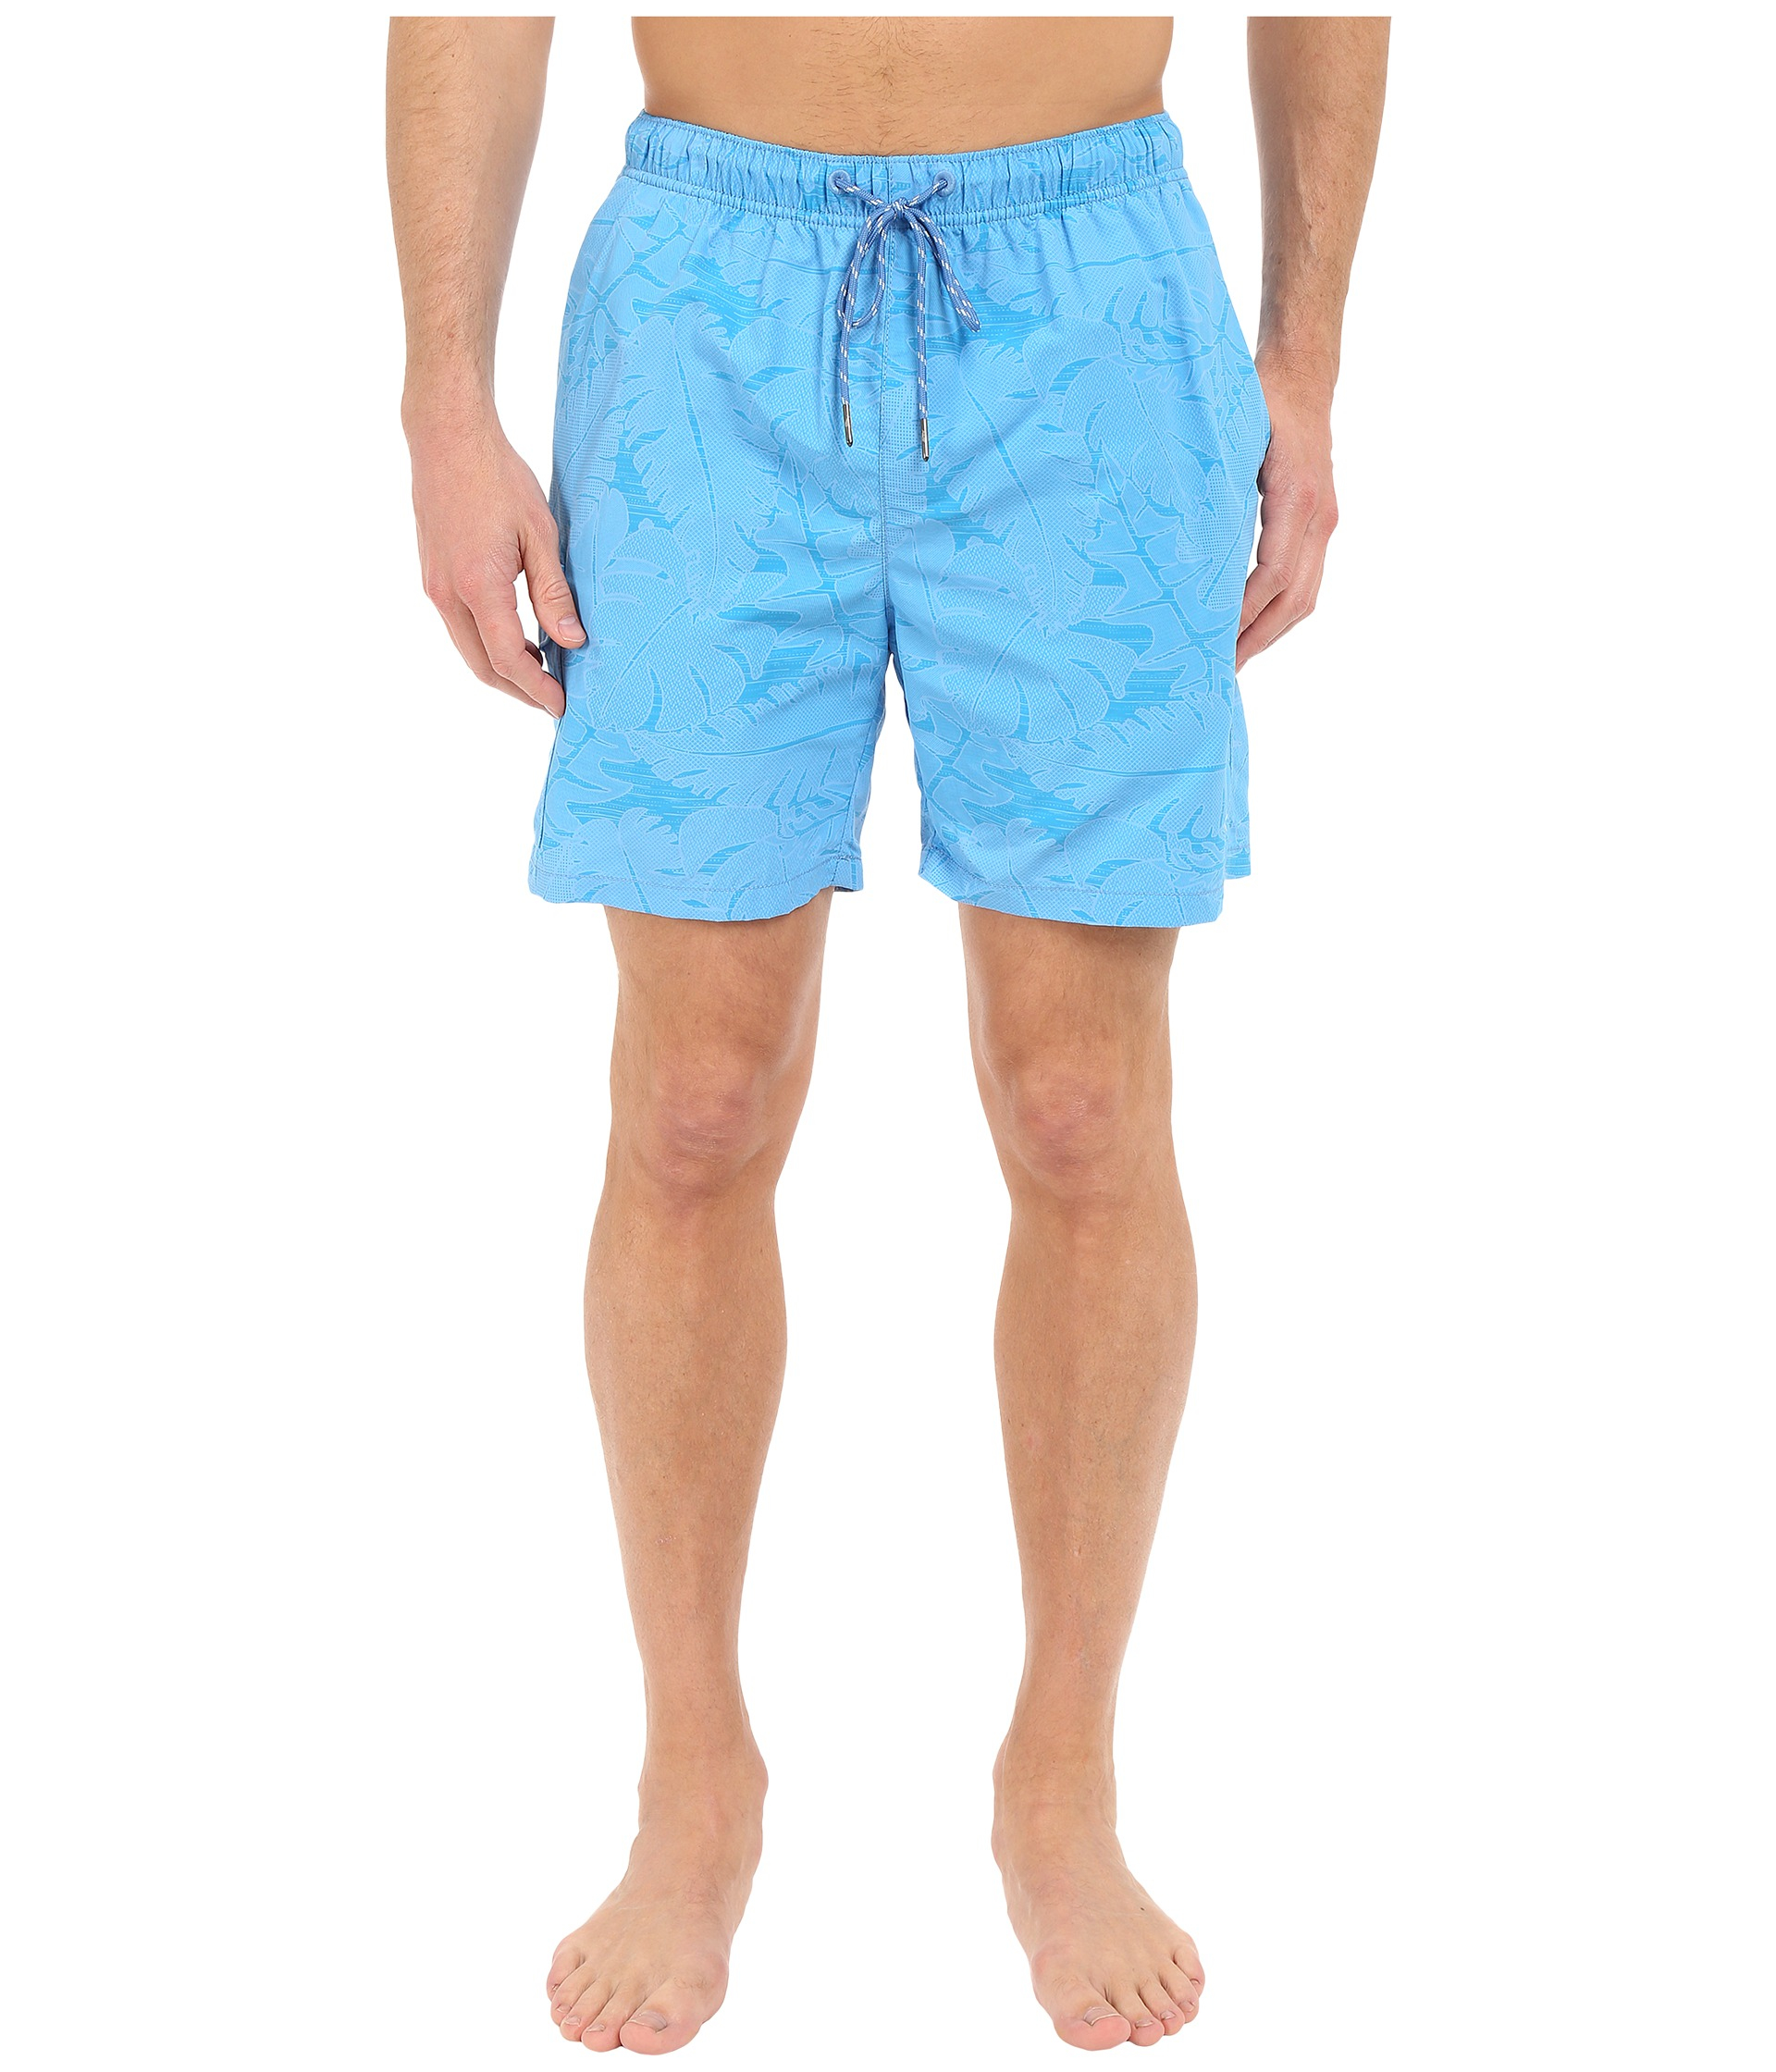 937afe4e4d Lyst - Tommy Bahama Naples Captain Jacquard 6-inch Swim Trunks in ...